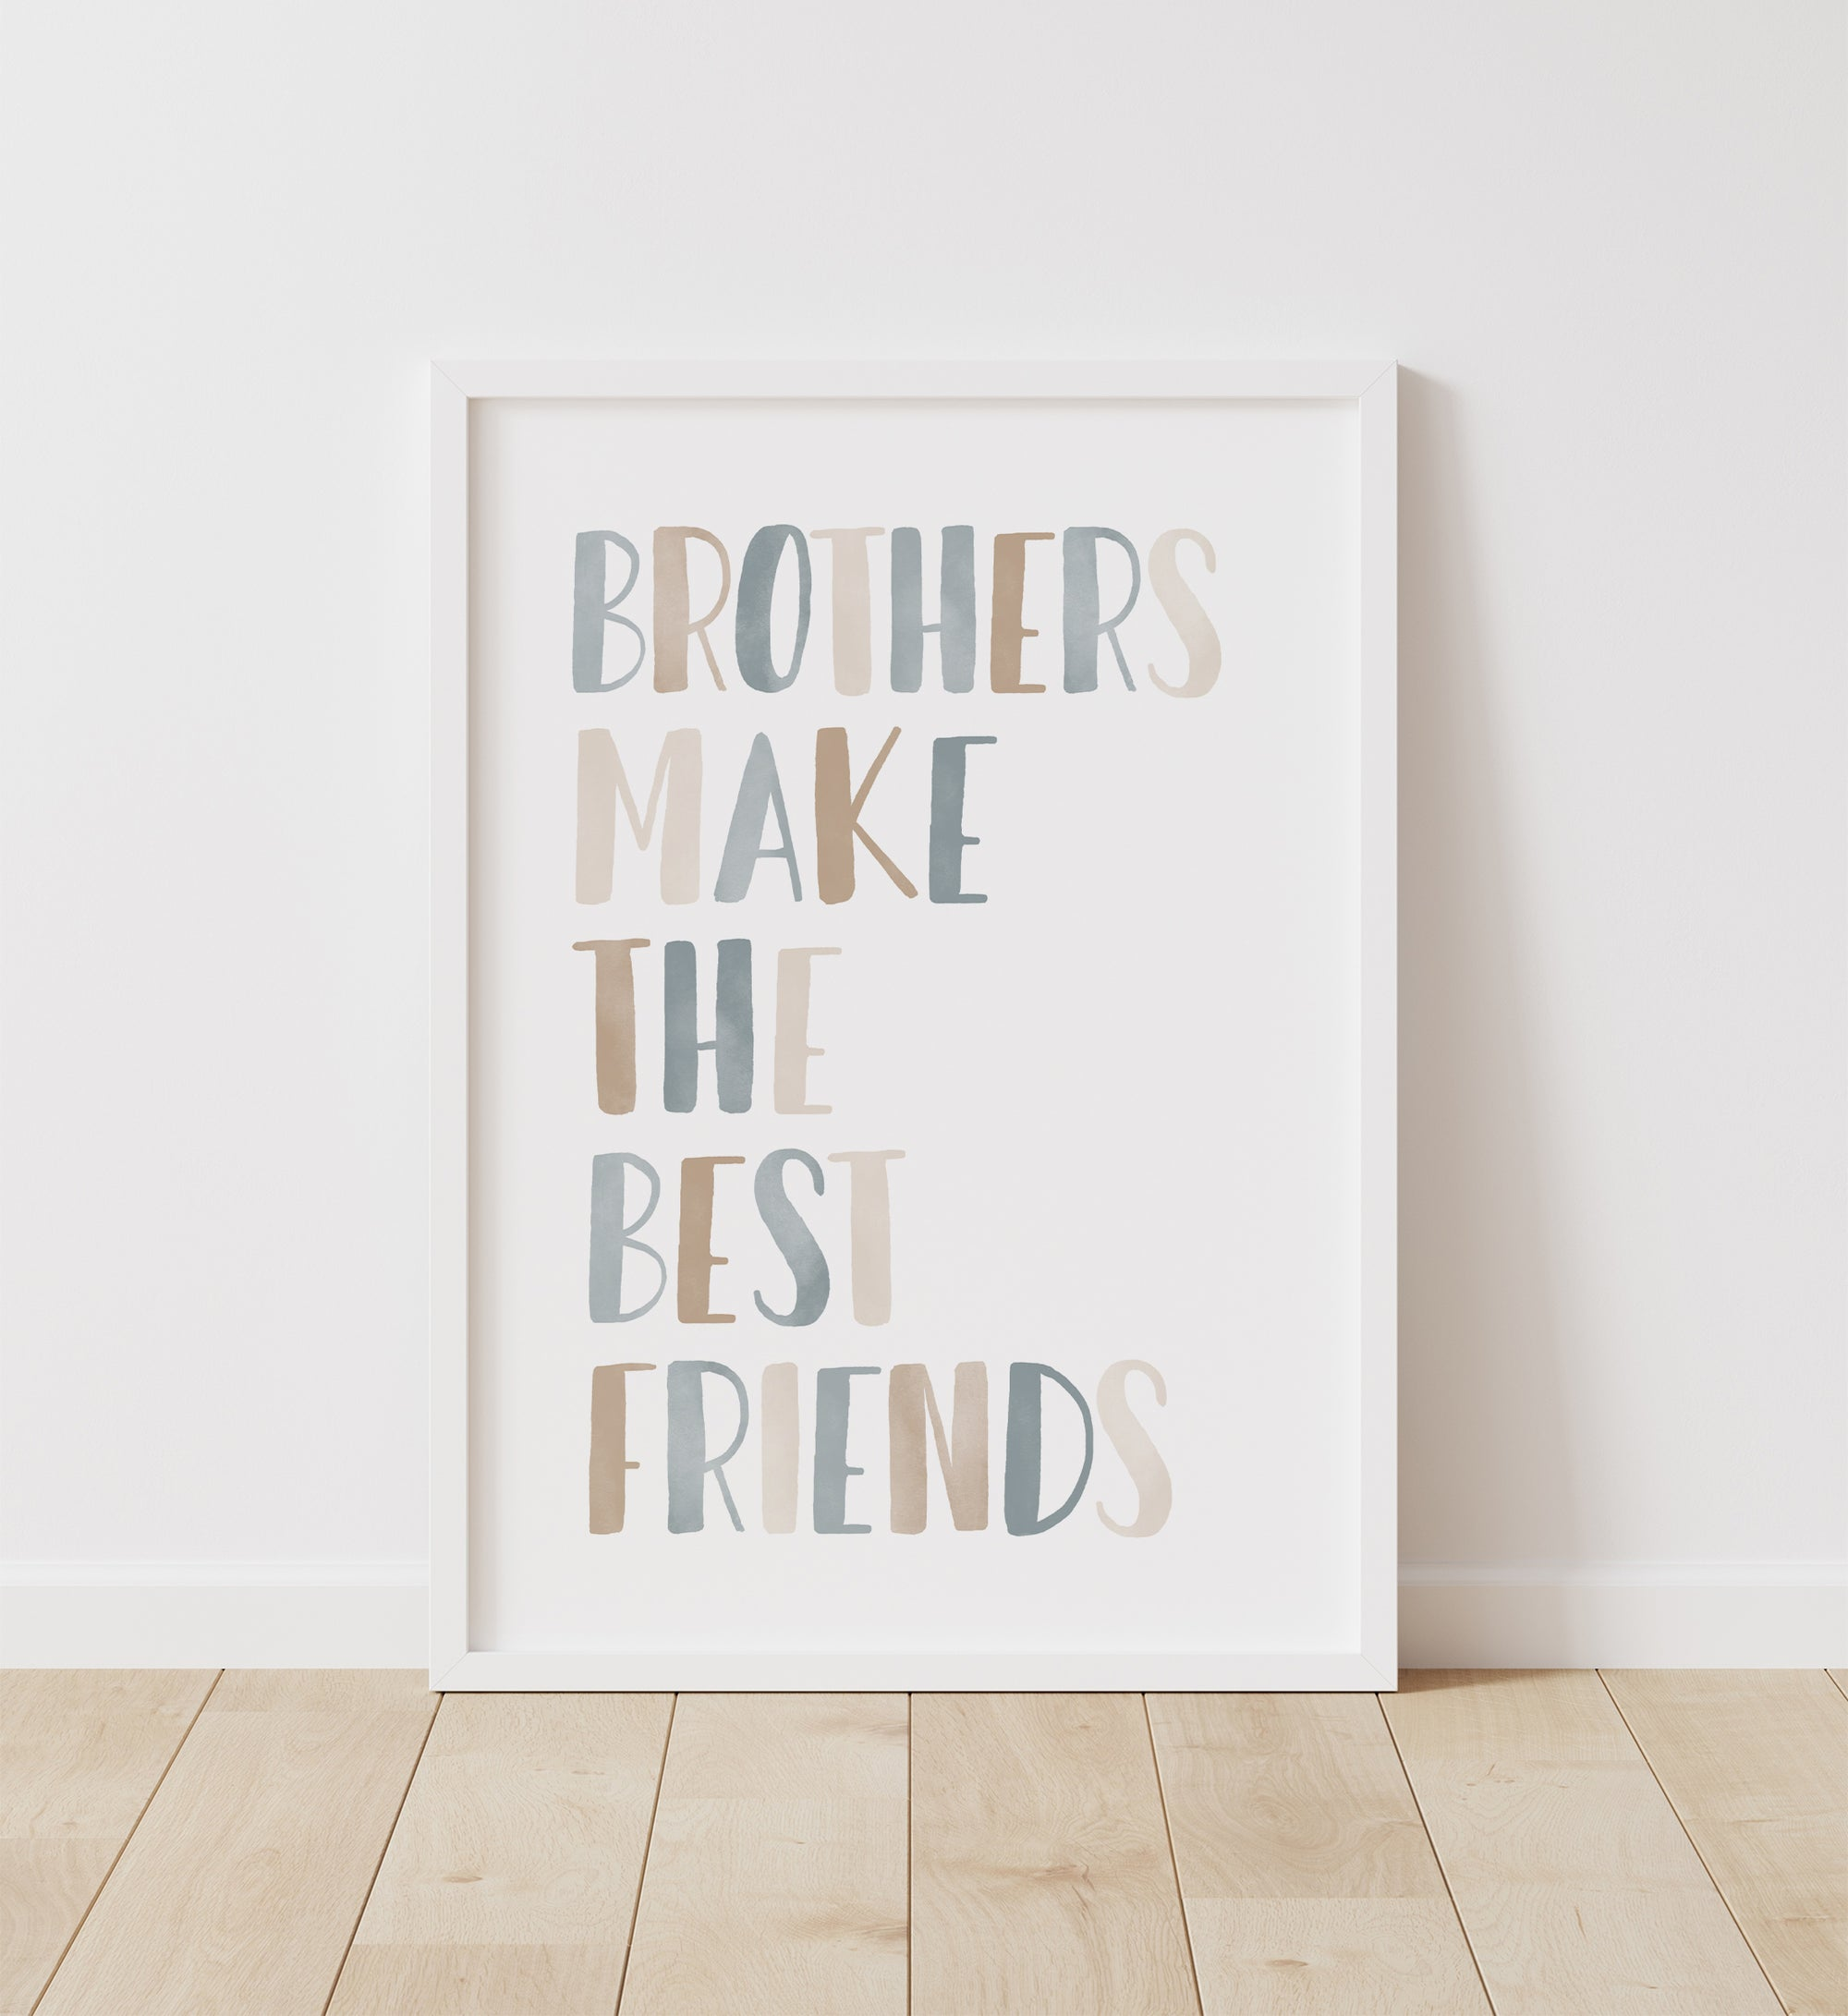 Brothers Make the Best Friends - Blue and Neutral